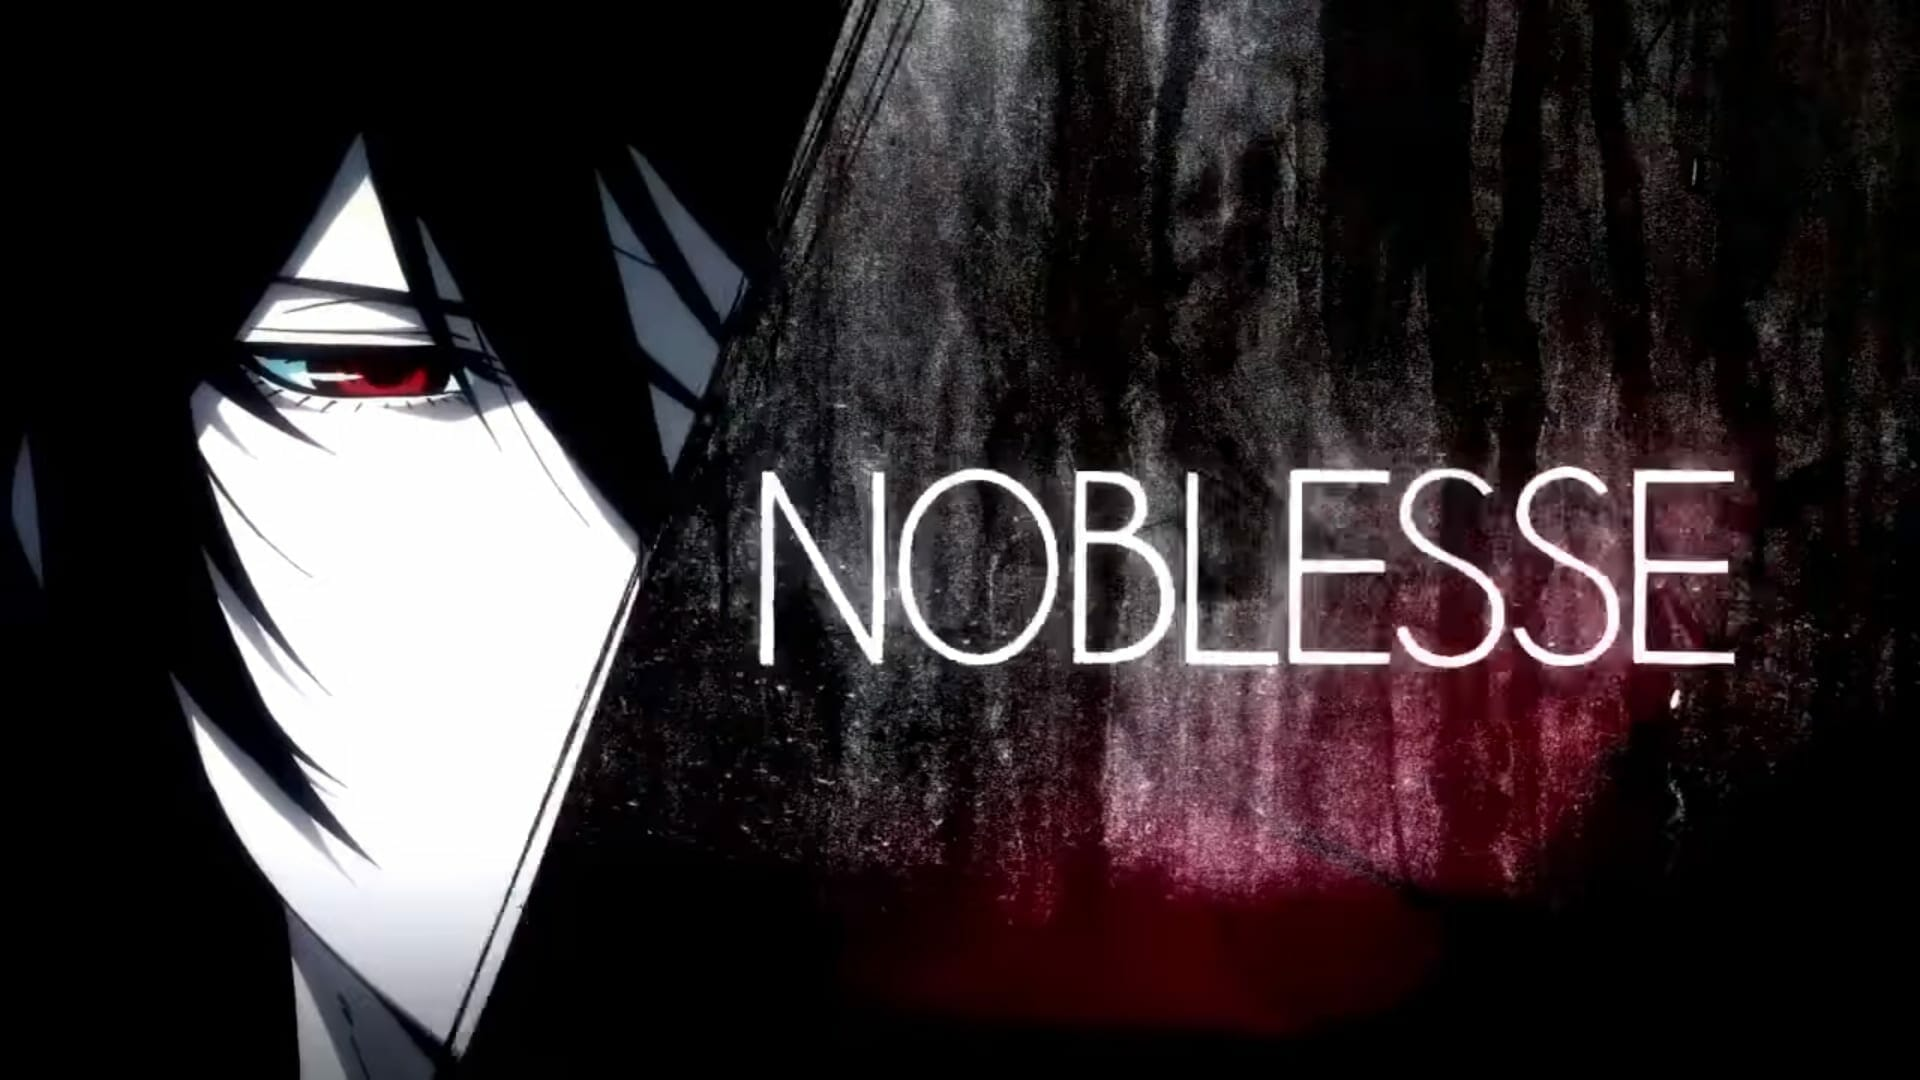 Noblesse anime